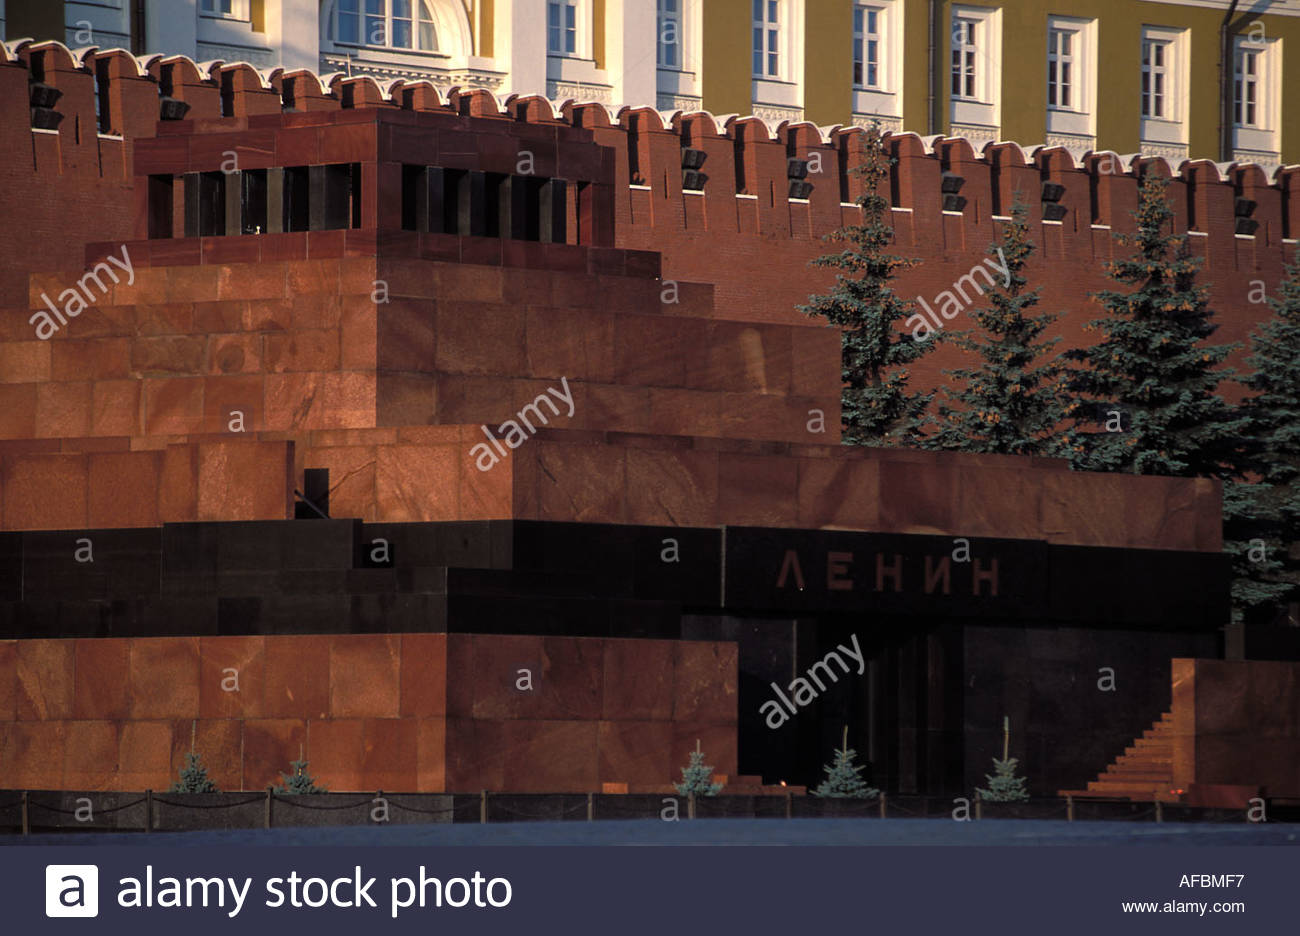 Moscow Lenin mausoleum on the red square Kremlin in the background 1300x936